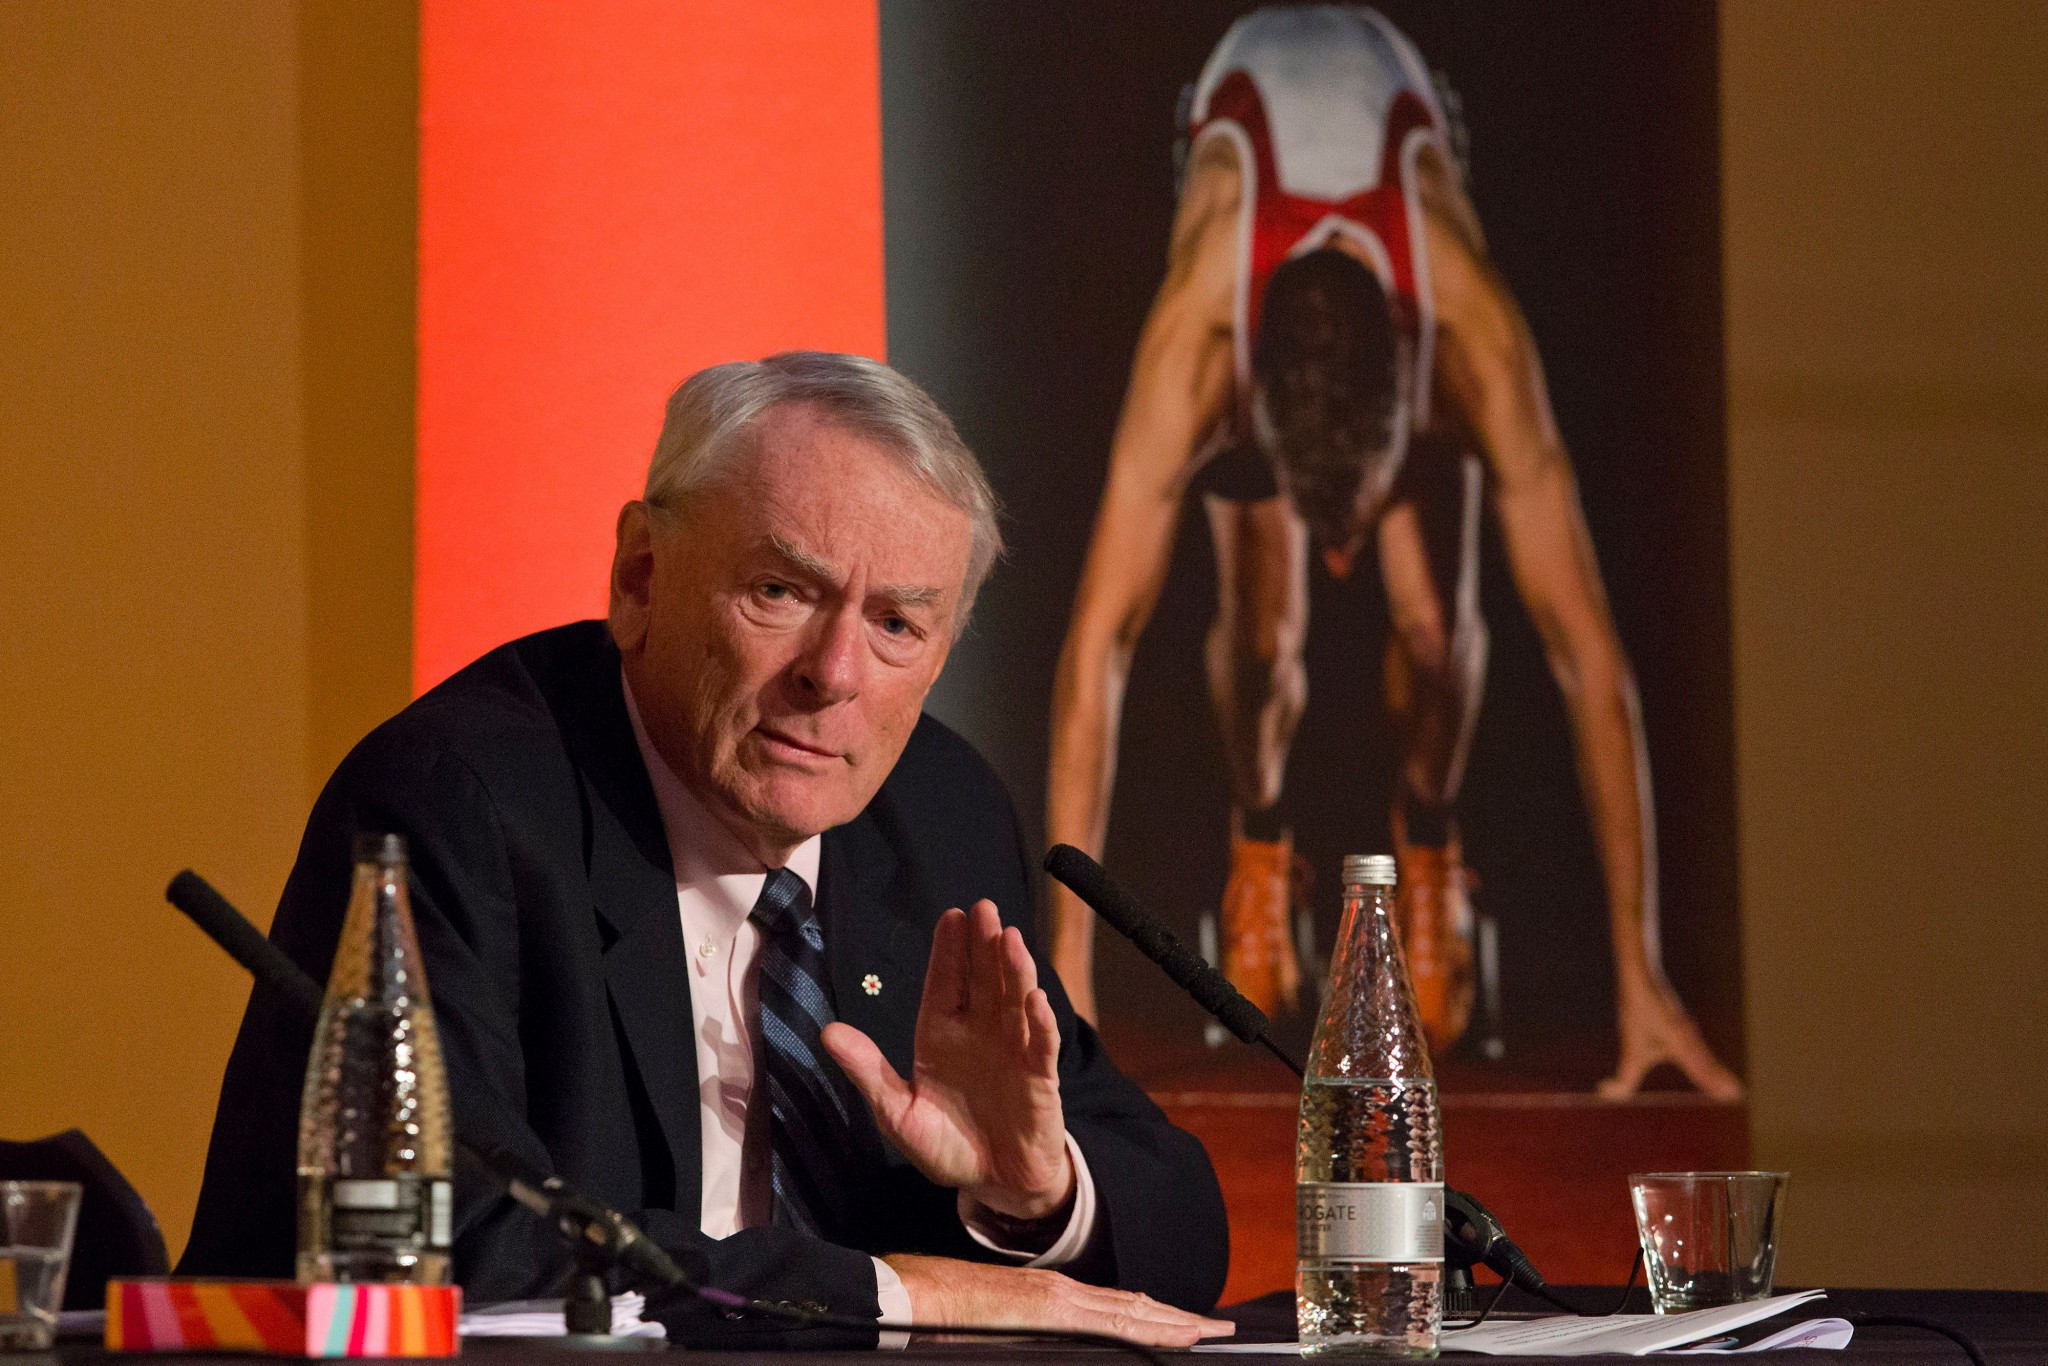 Pound joins Scott in warning IOC that a fine is not enough of a punishment for Russia after doping scandal